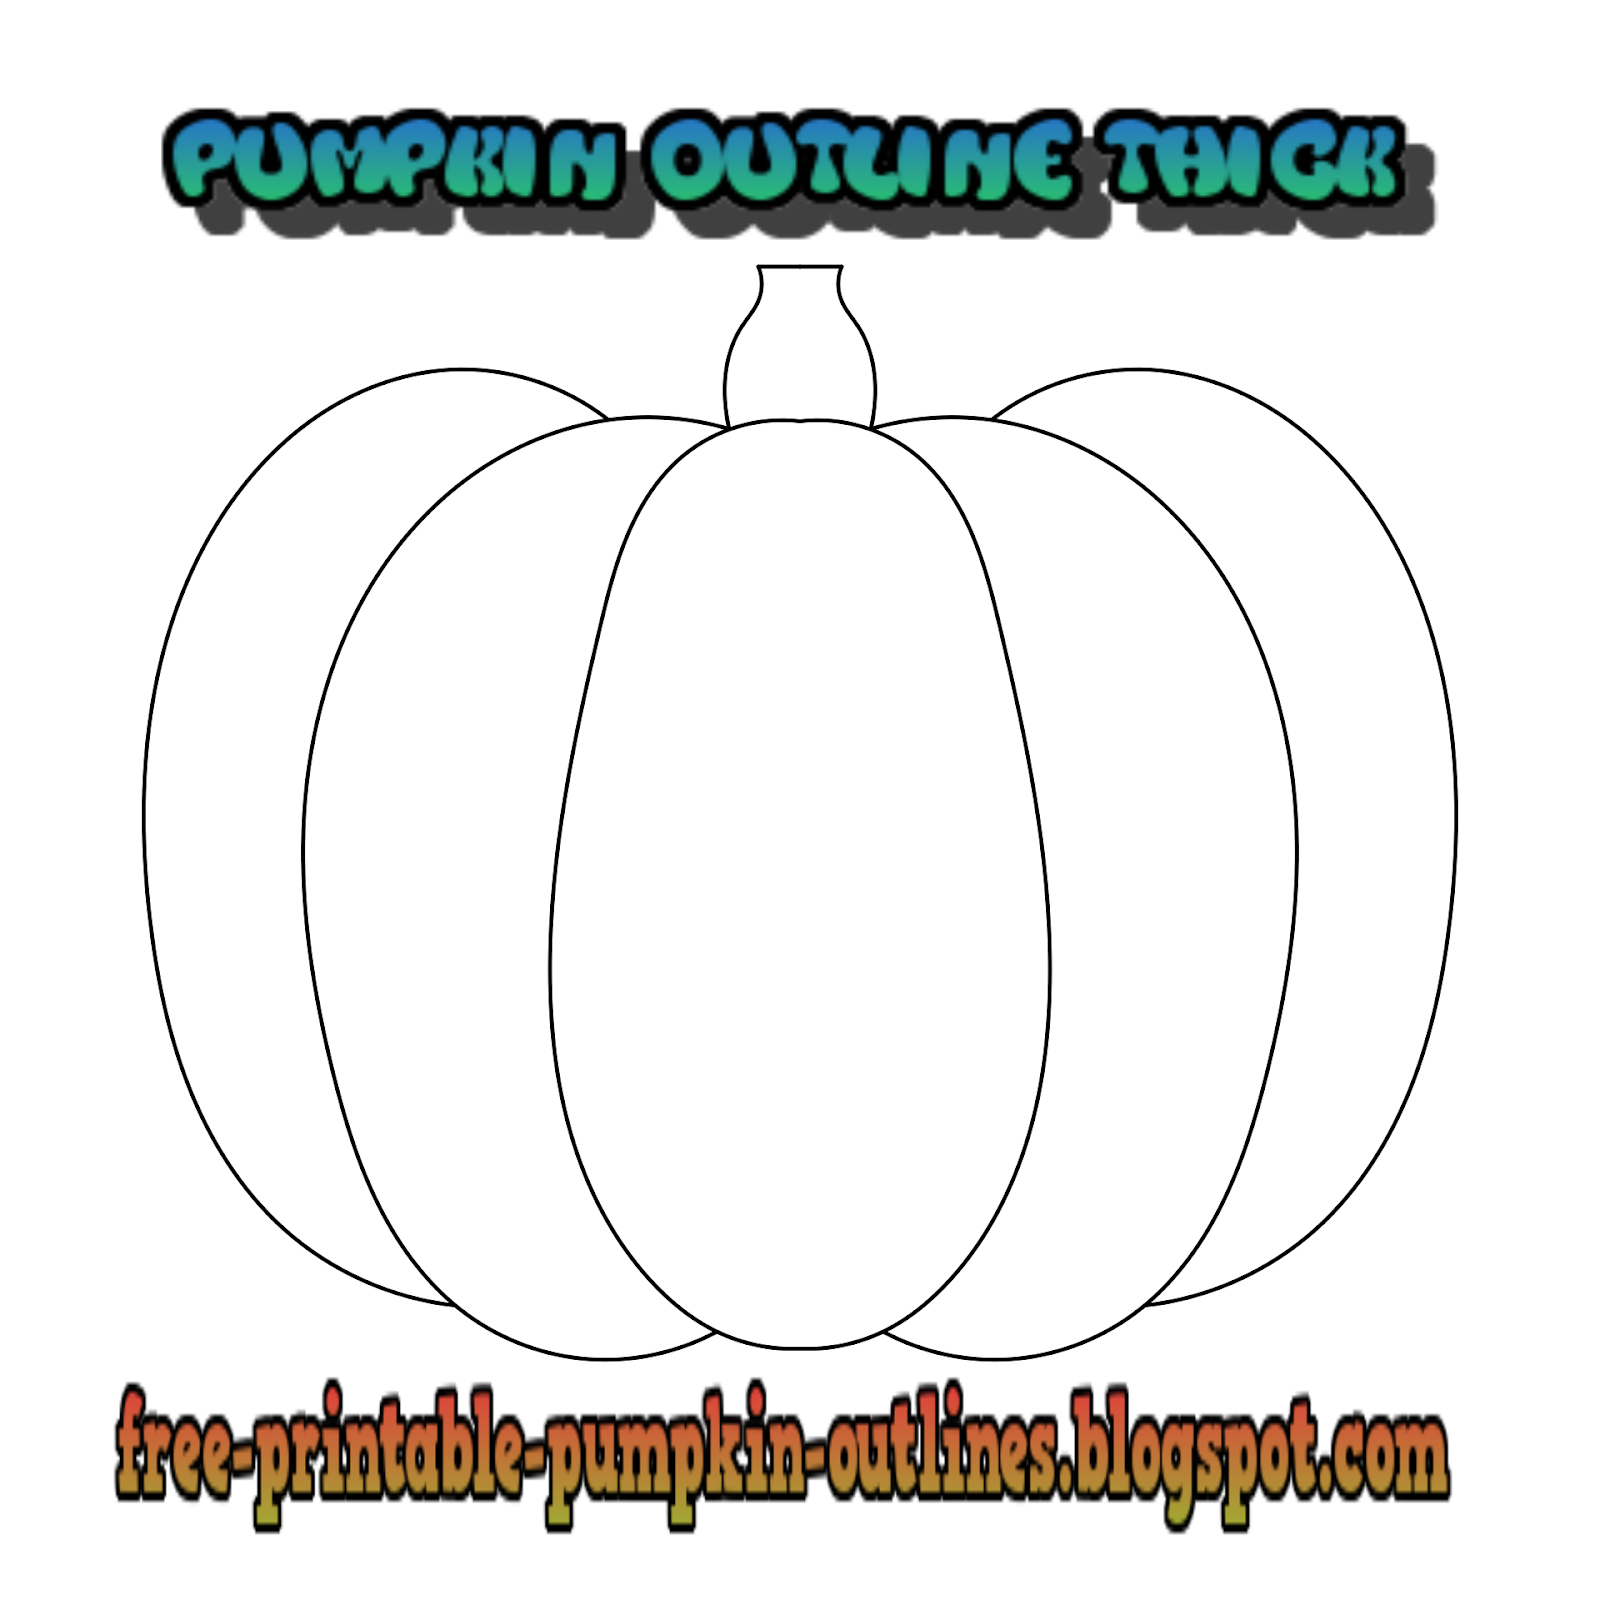 Pumpkin Outline Thick Simple Free Printable Pumpkin Outlines Pumpkin Outline Outline Pumpkin